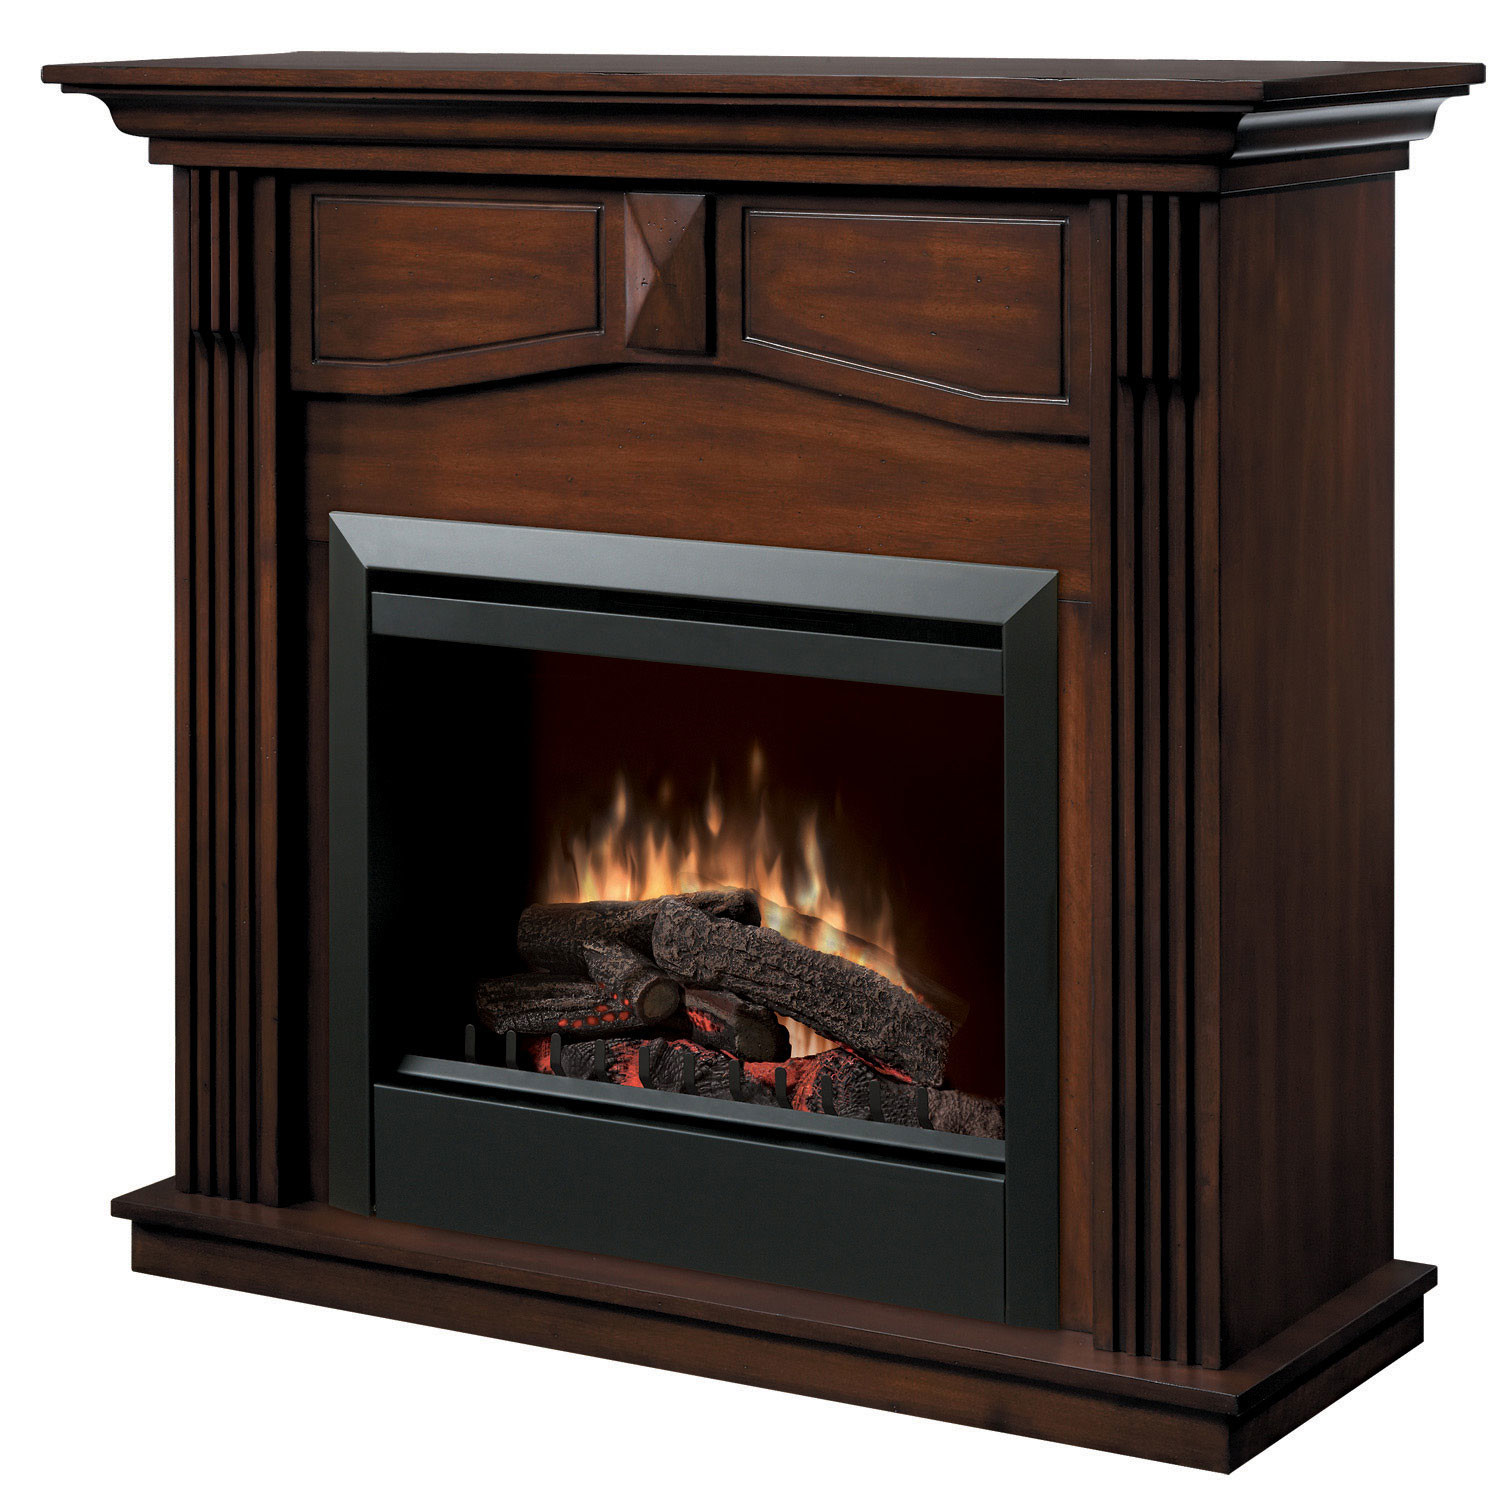 Dazzling muskoka electric fireplace for home furniture with muskoka electric fireplace insert